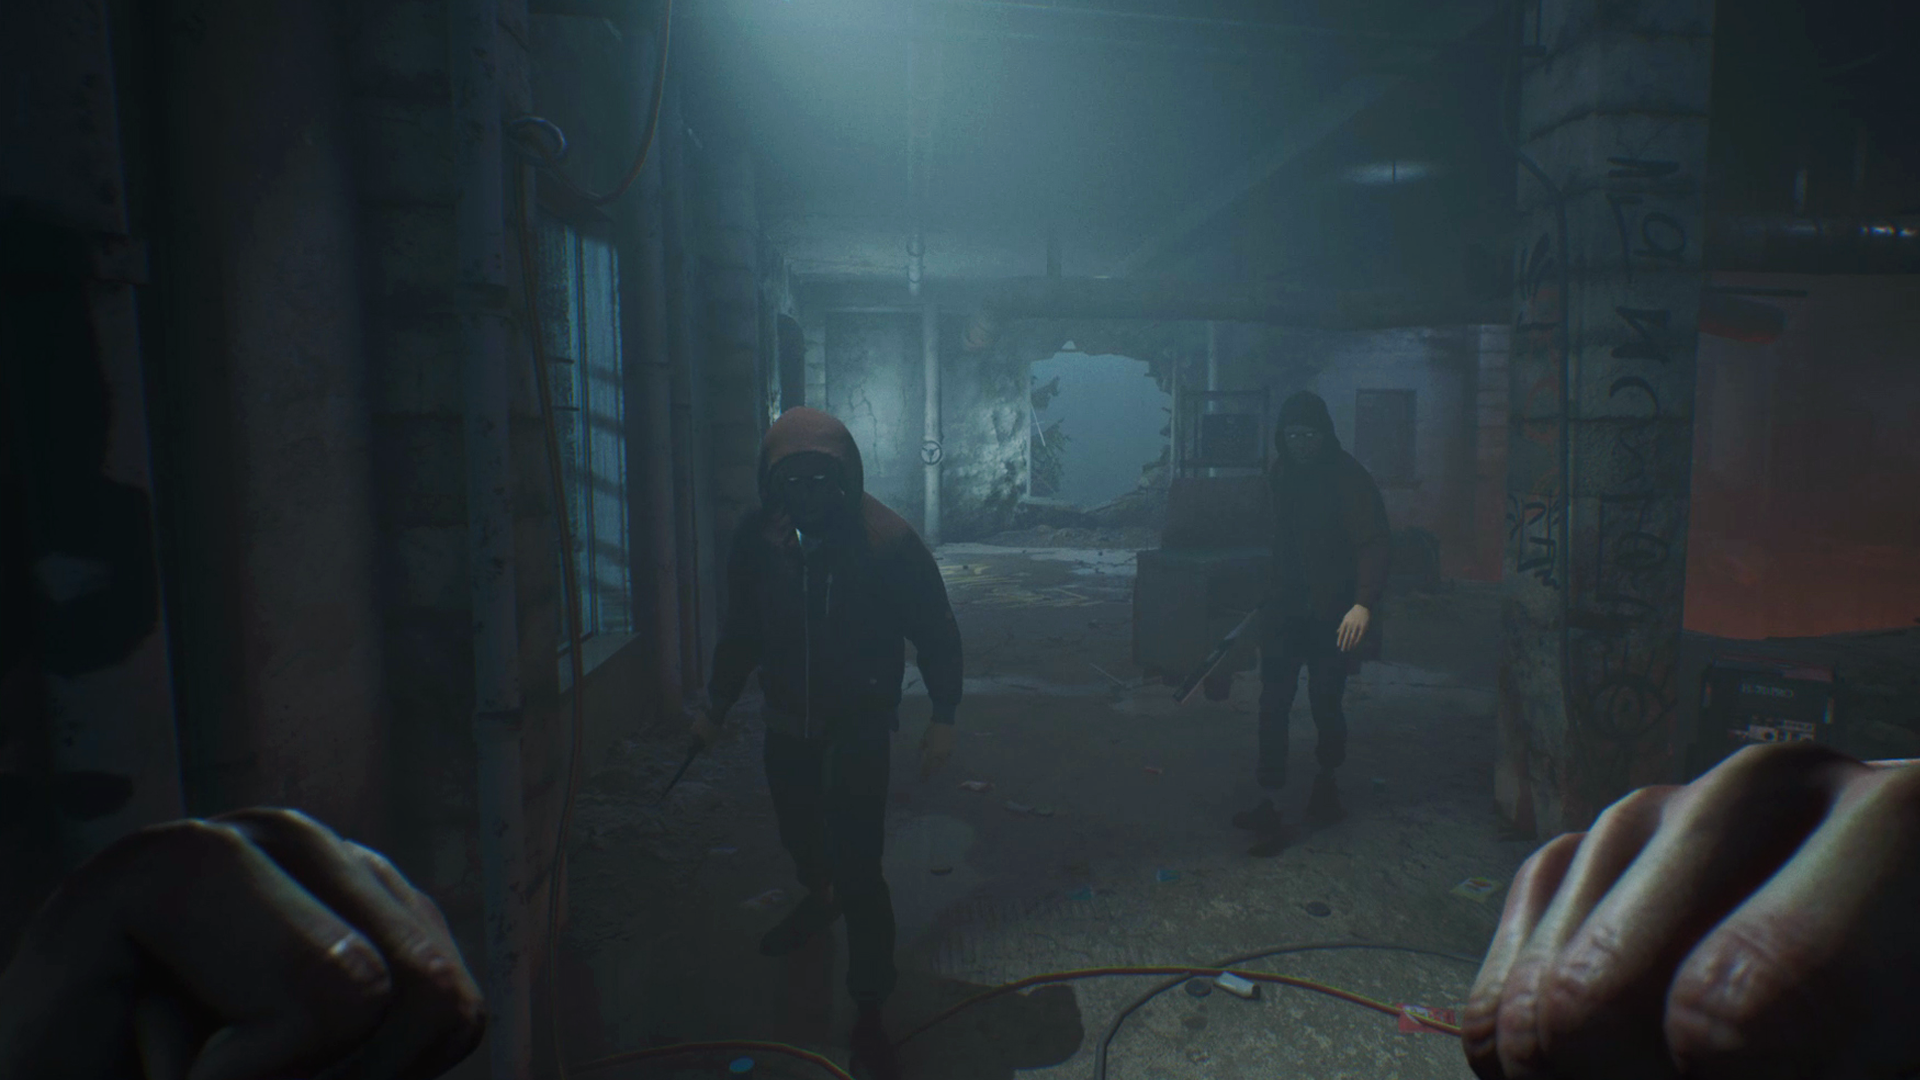 Vampire The Masquerade Bloodlines 2 Toreador reveal screenshot